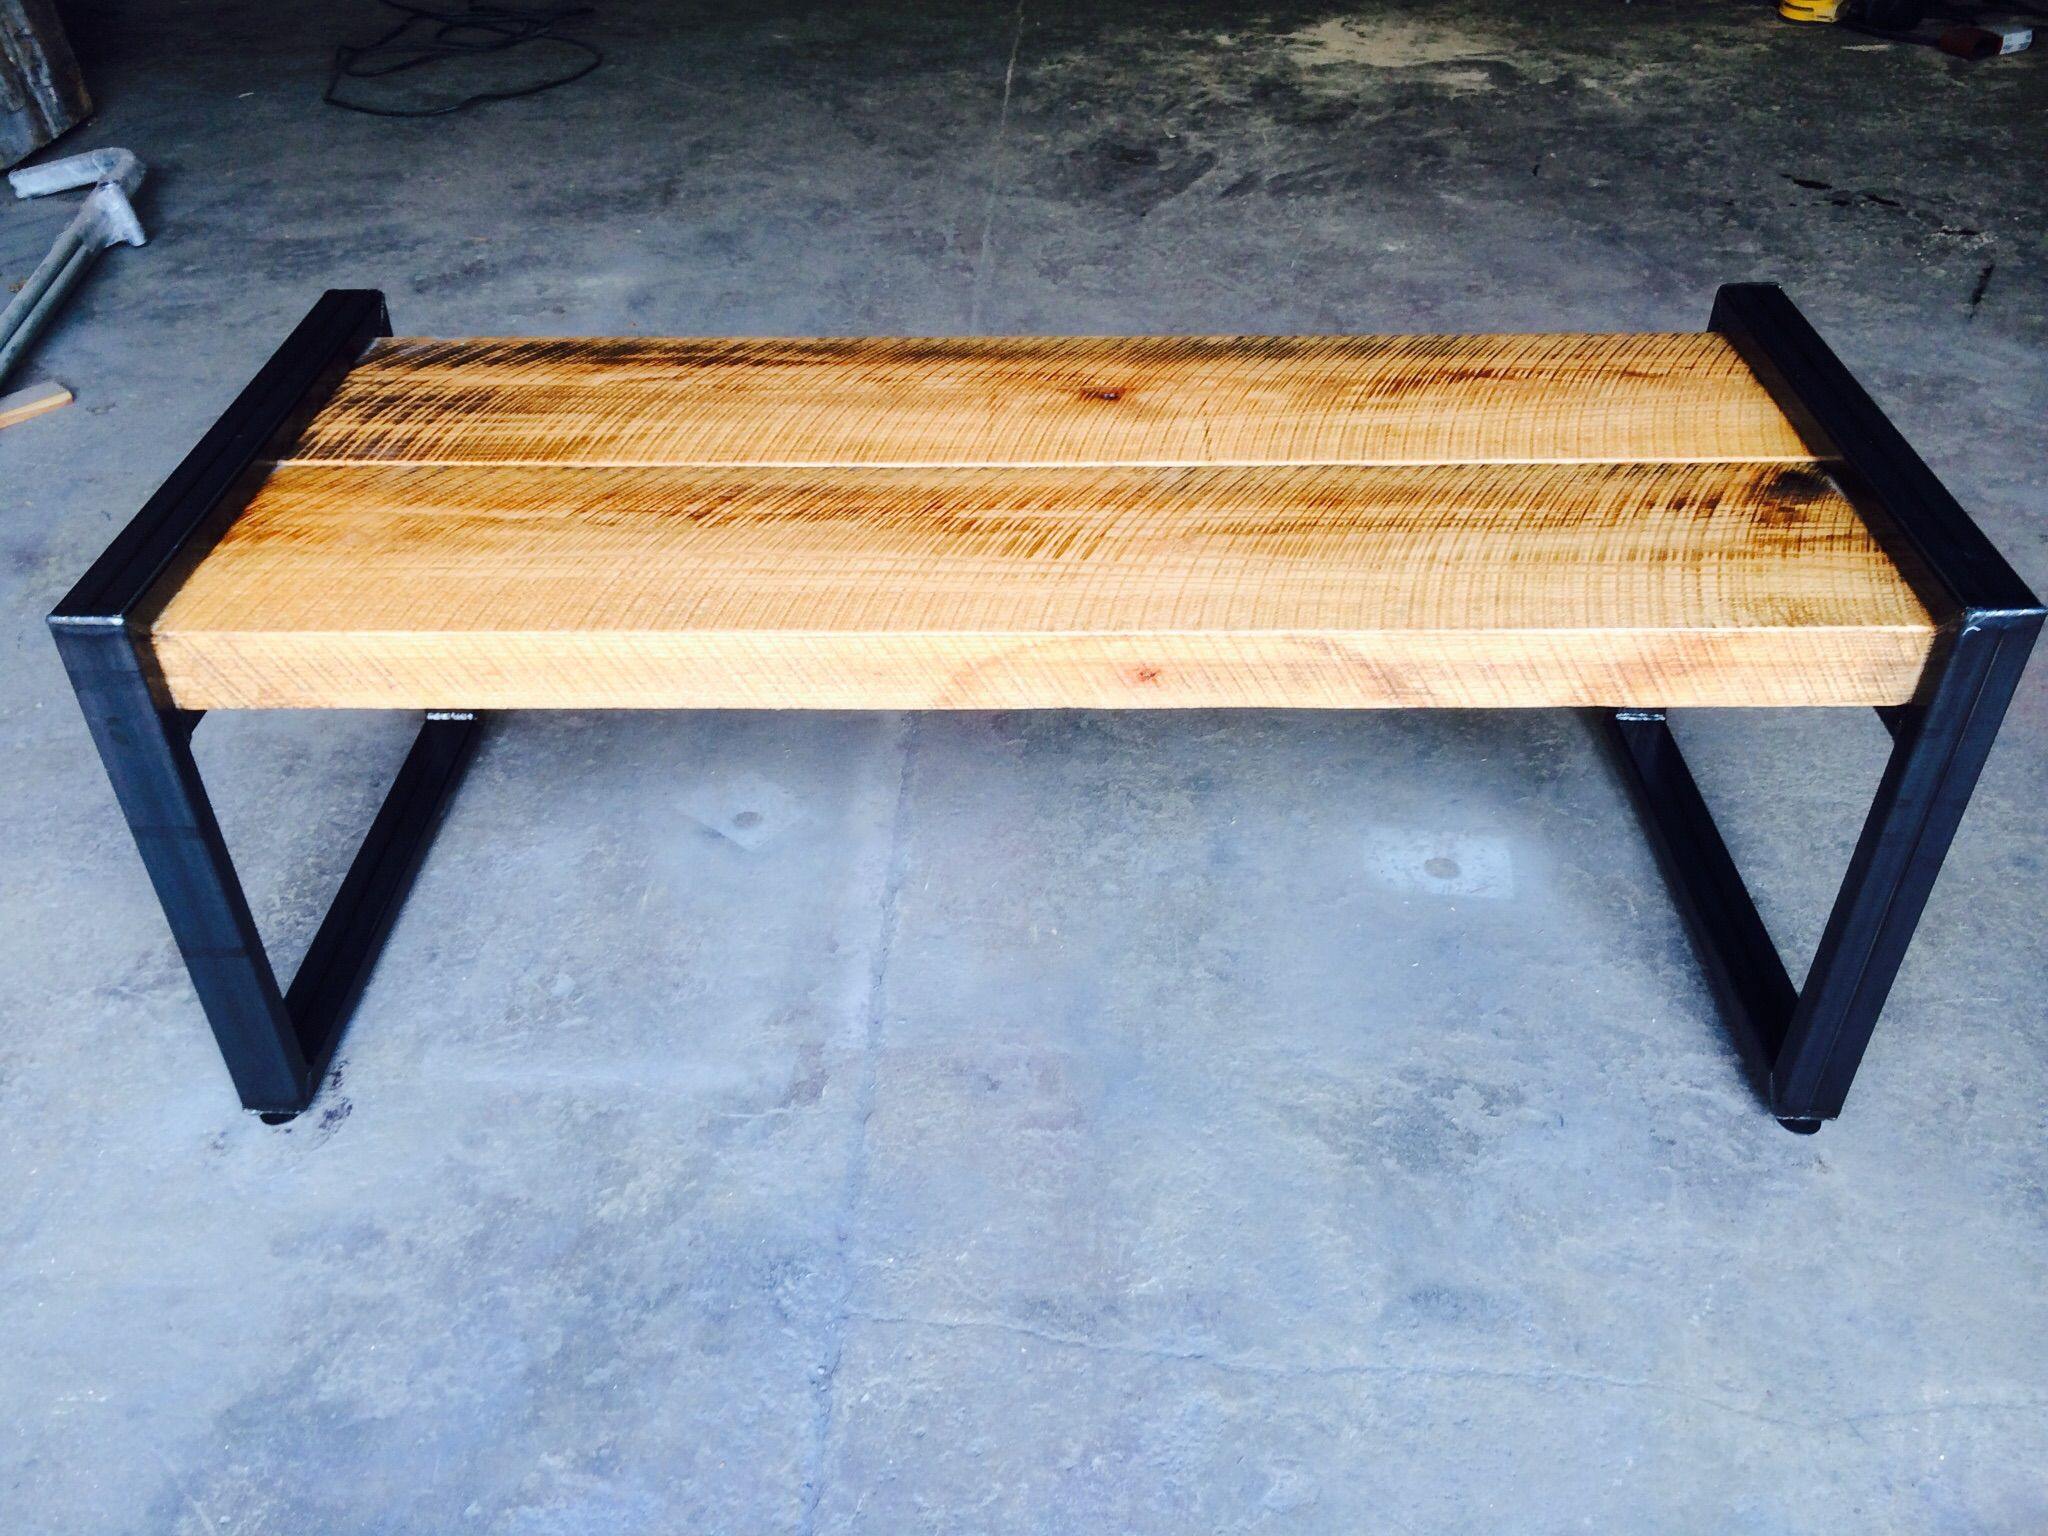 Custom Reclaimed Oak Beam Bench by Virginia Build Works | CustomMade.com